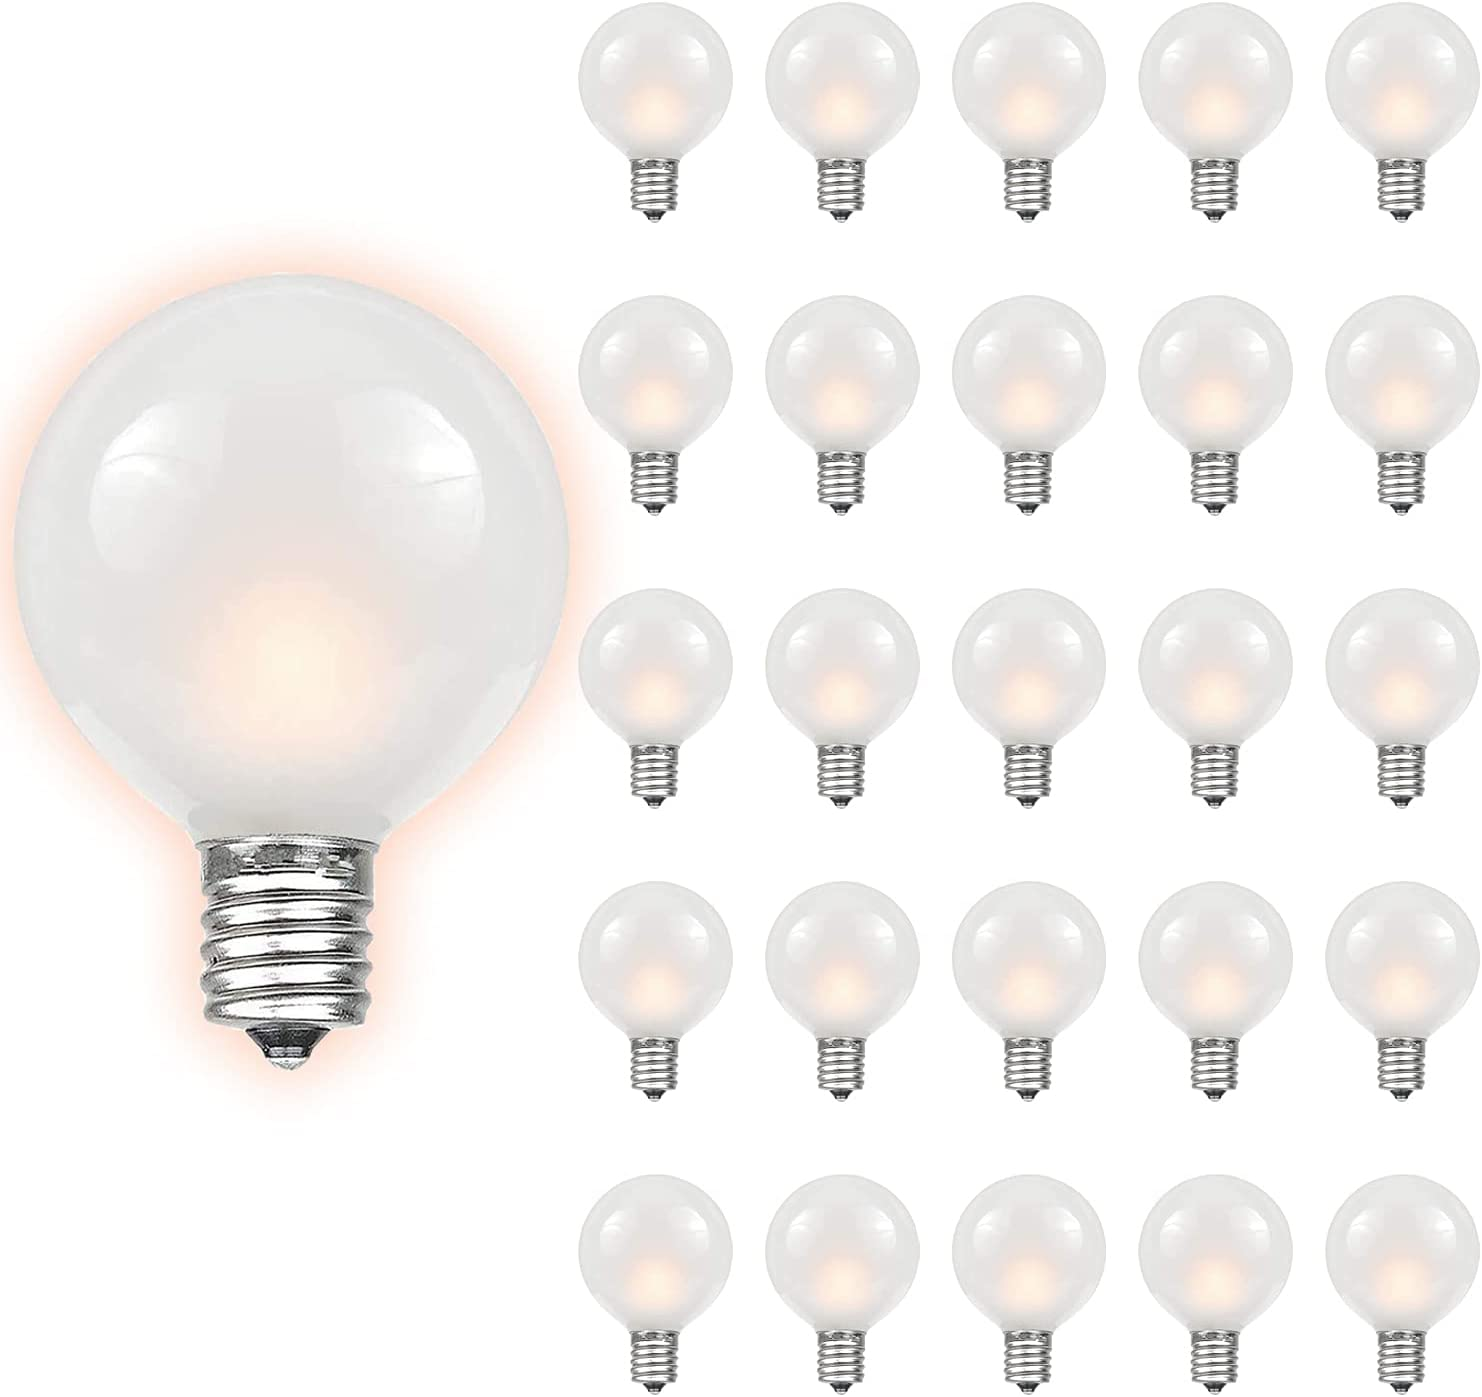 Dr.BeTree G40 Frosted White Bulbs 25 Pack Outdoor Globe Replacement Bulbs with Frosted White, 5 watts, 120 Volts, E12 Base